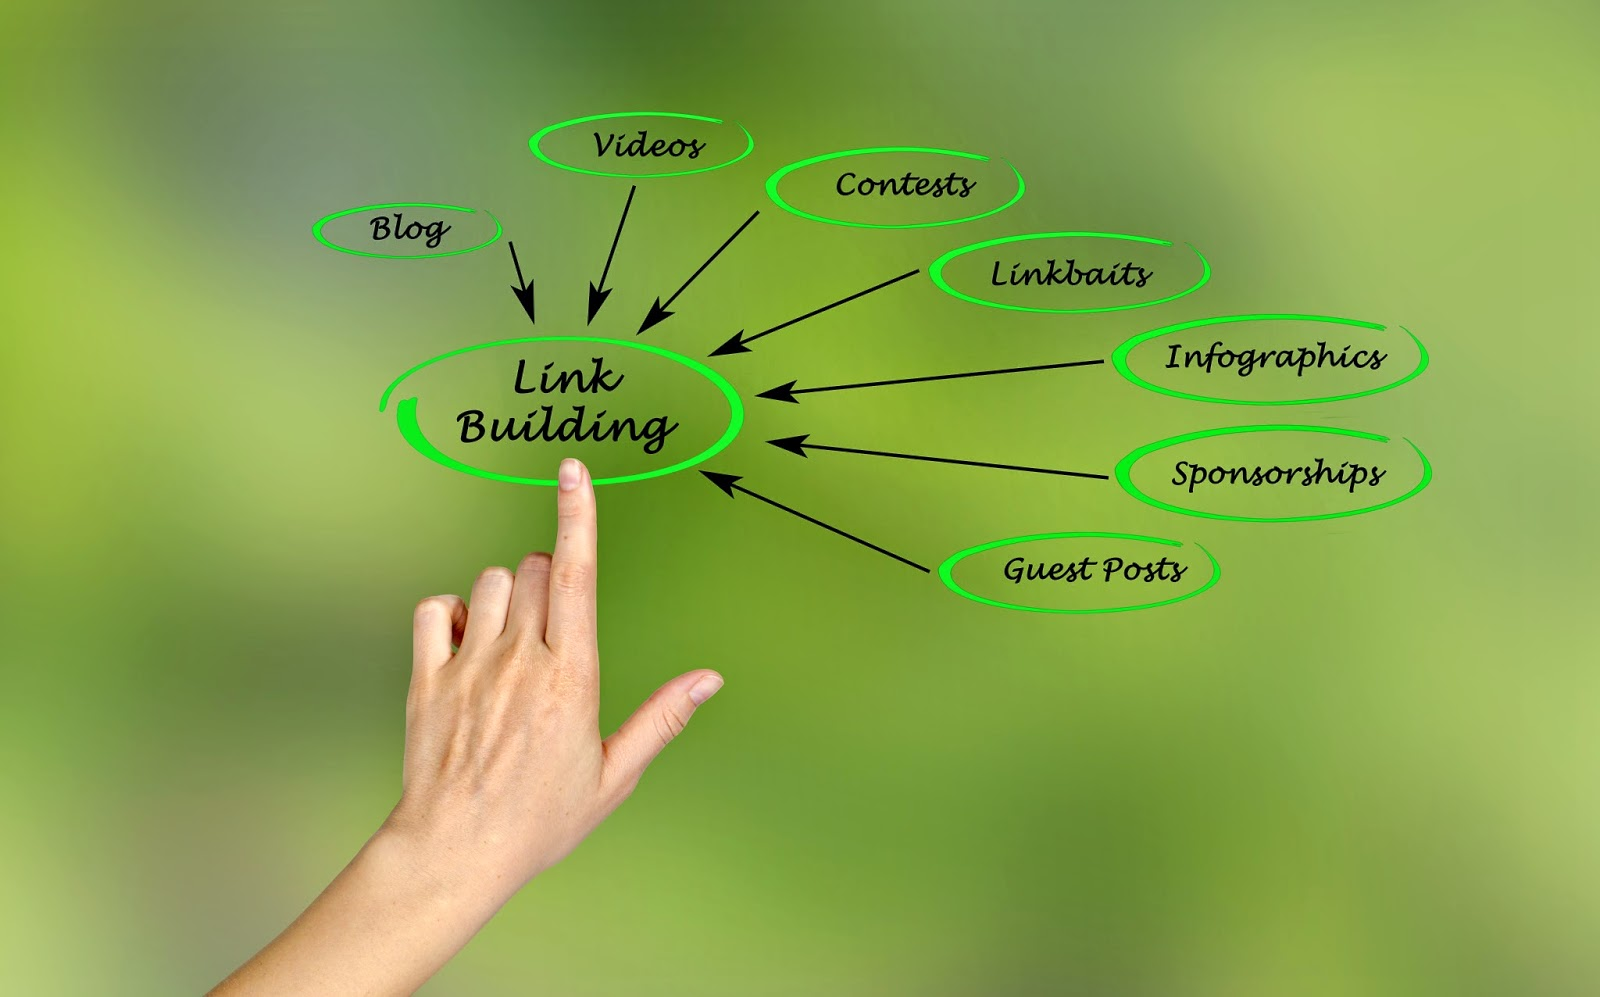 How to Build Links in 2015? 1